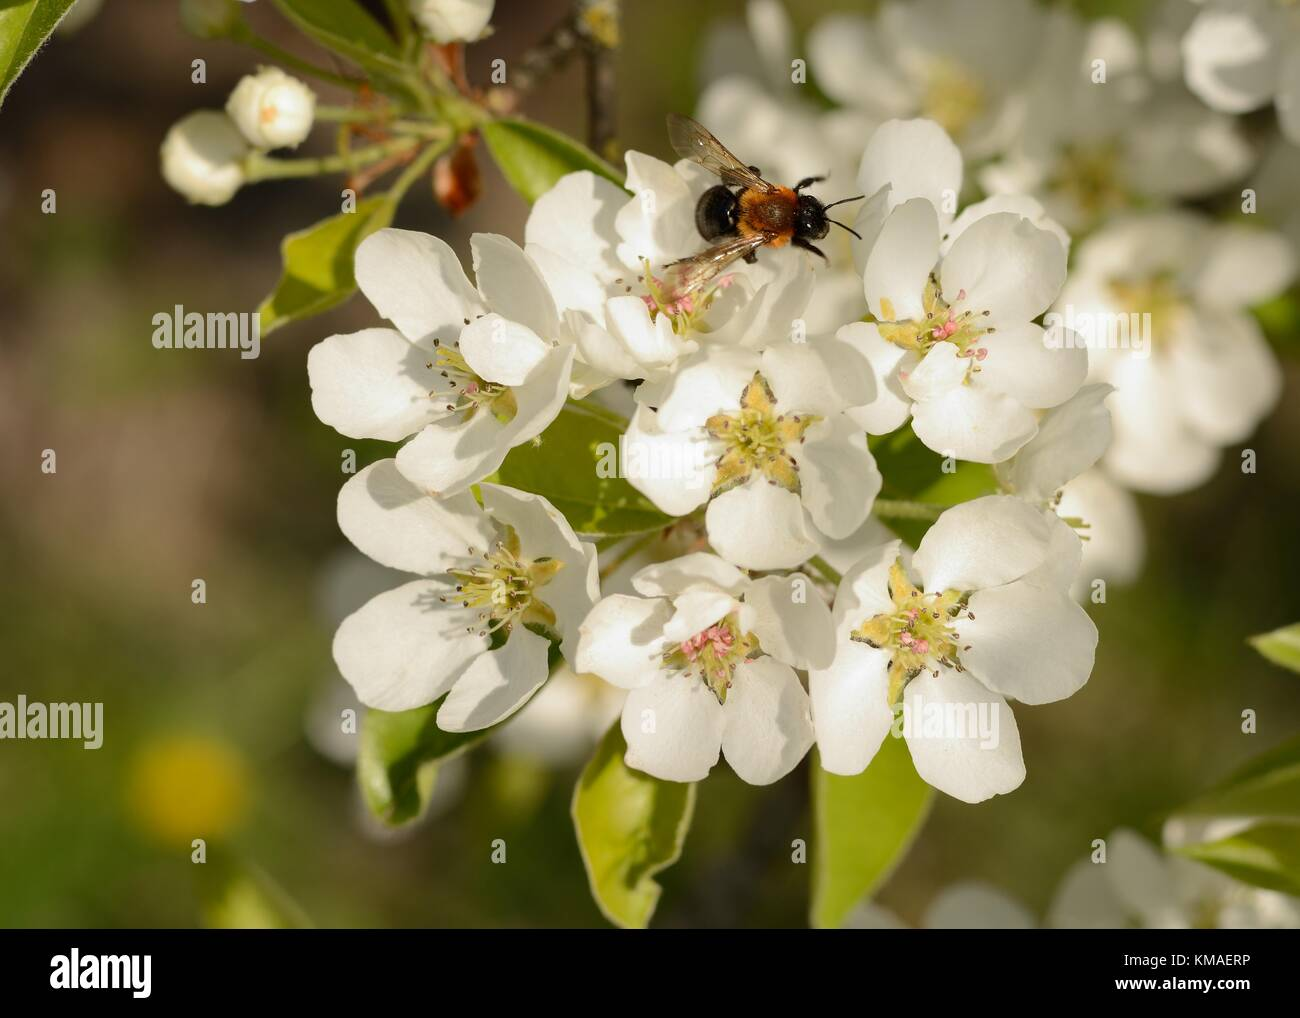 Bee pollinating wild pear (lat.: Pyrus communis) blossom in Spring - Stock Image